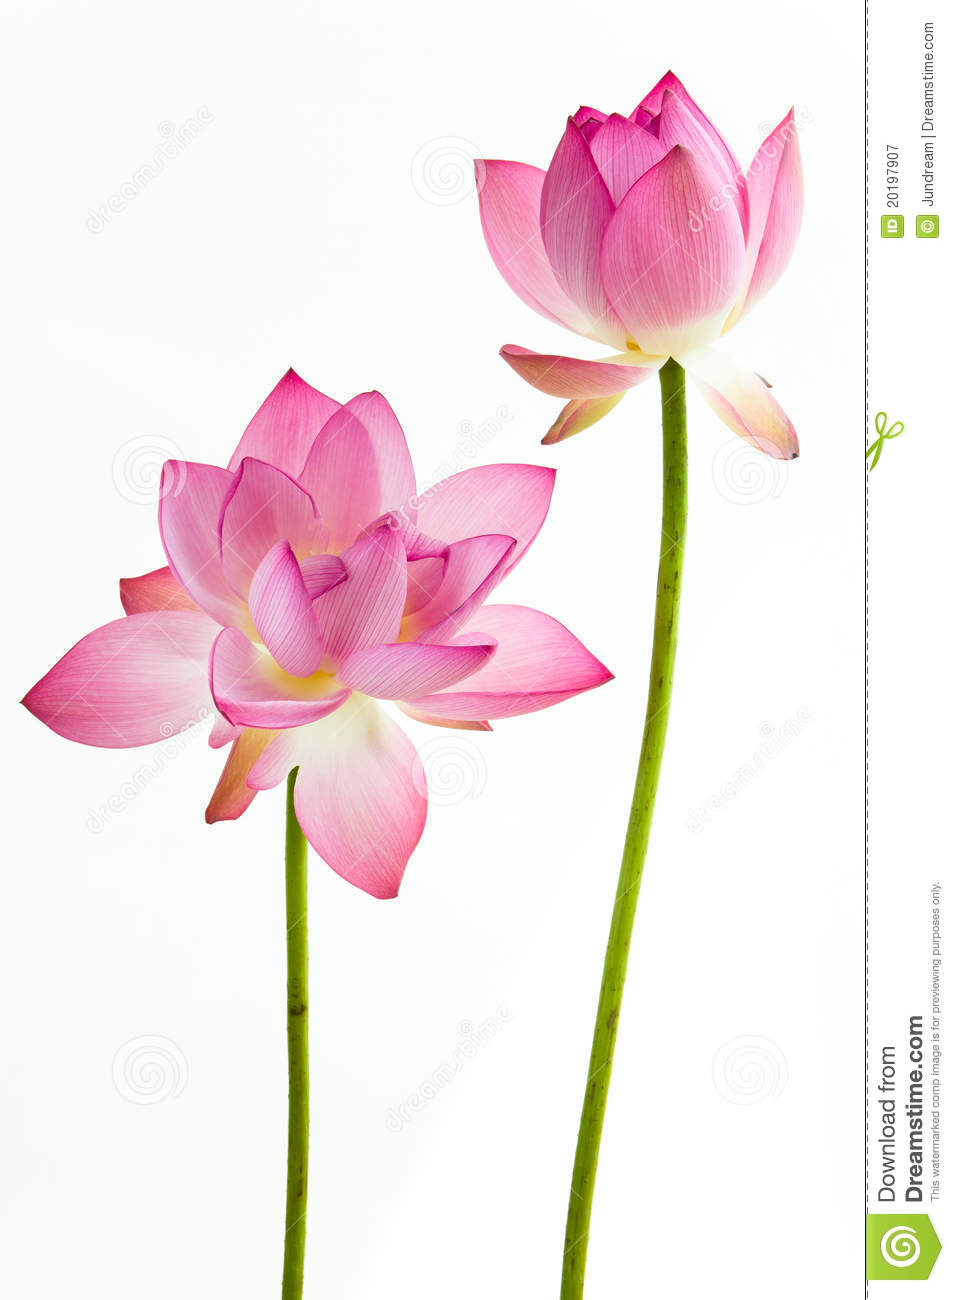 Twain Pink Water Lily Flower Lotus Stock Image Image Of Bloom